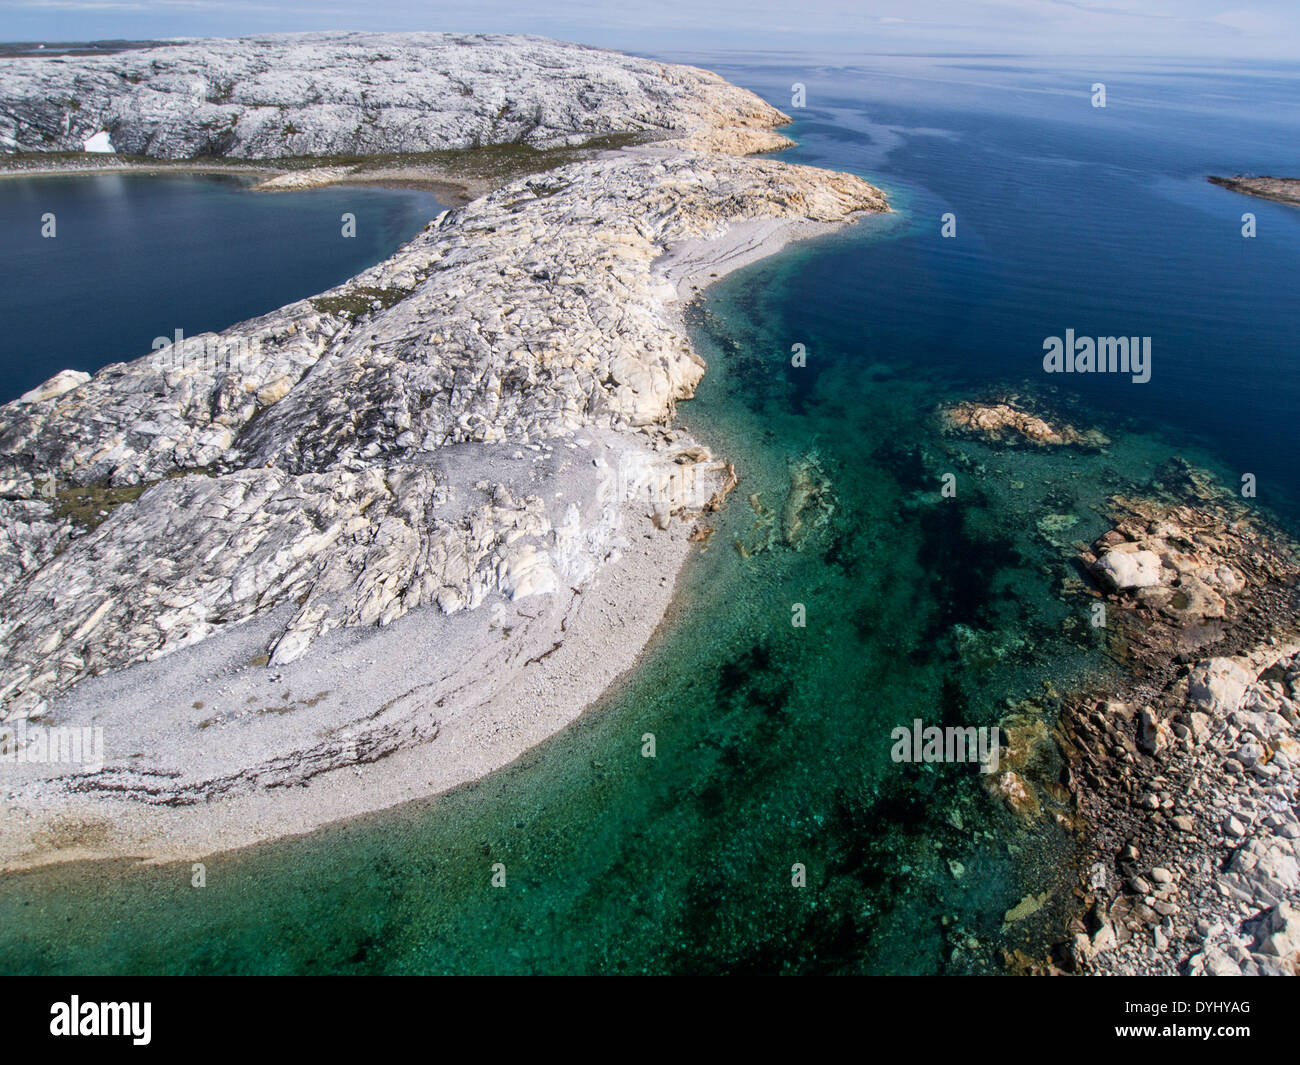 Canada, Nunavut Territory, Aerial view of Marble Island in Hudson Bay near village of Rankin Inlet - Stock Image